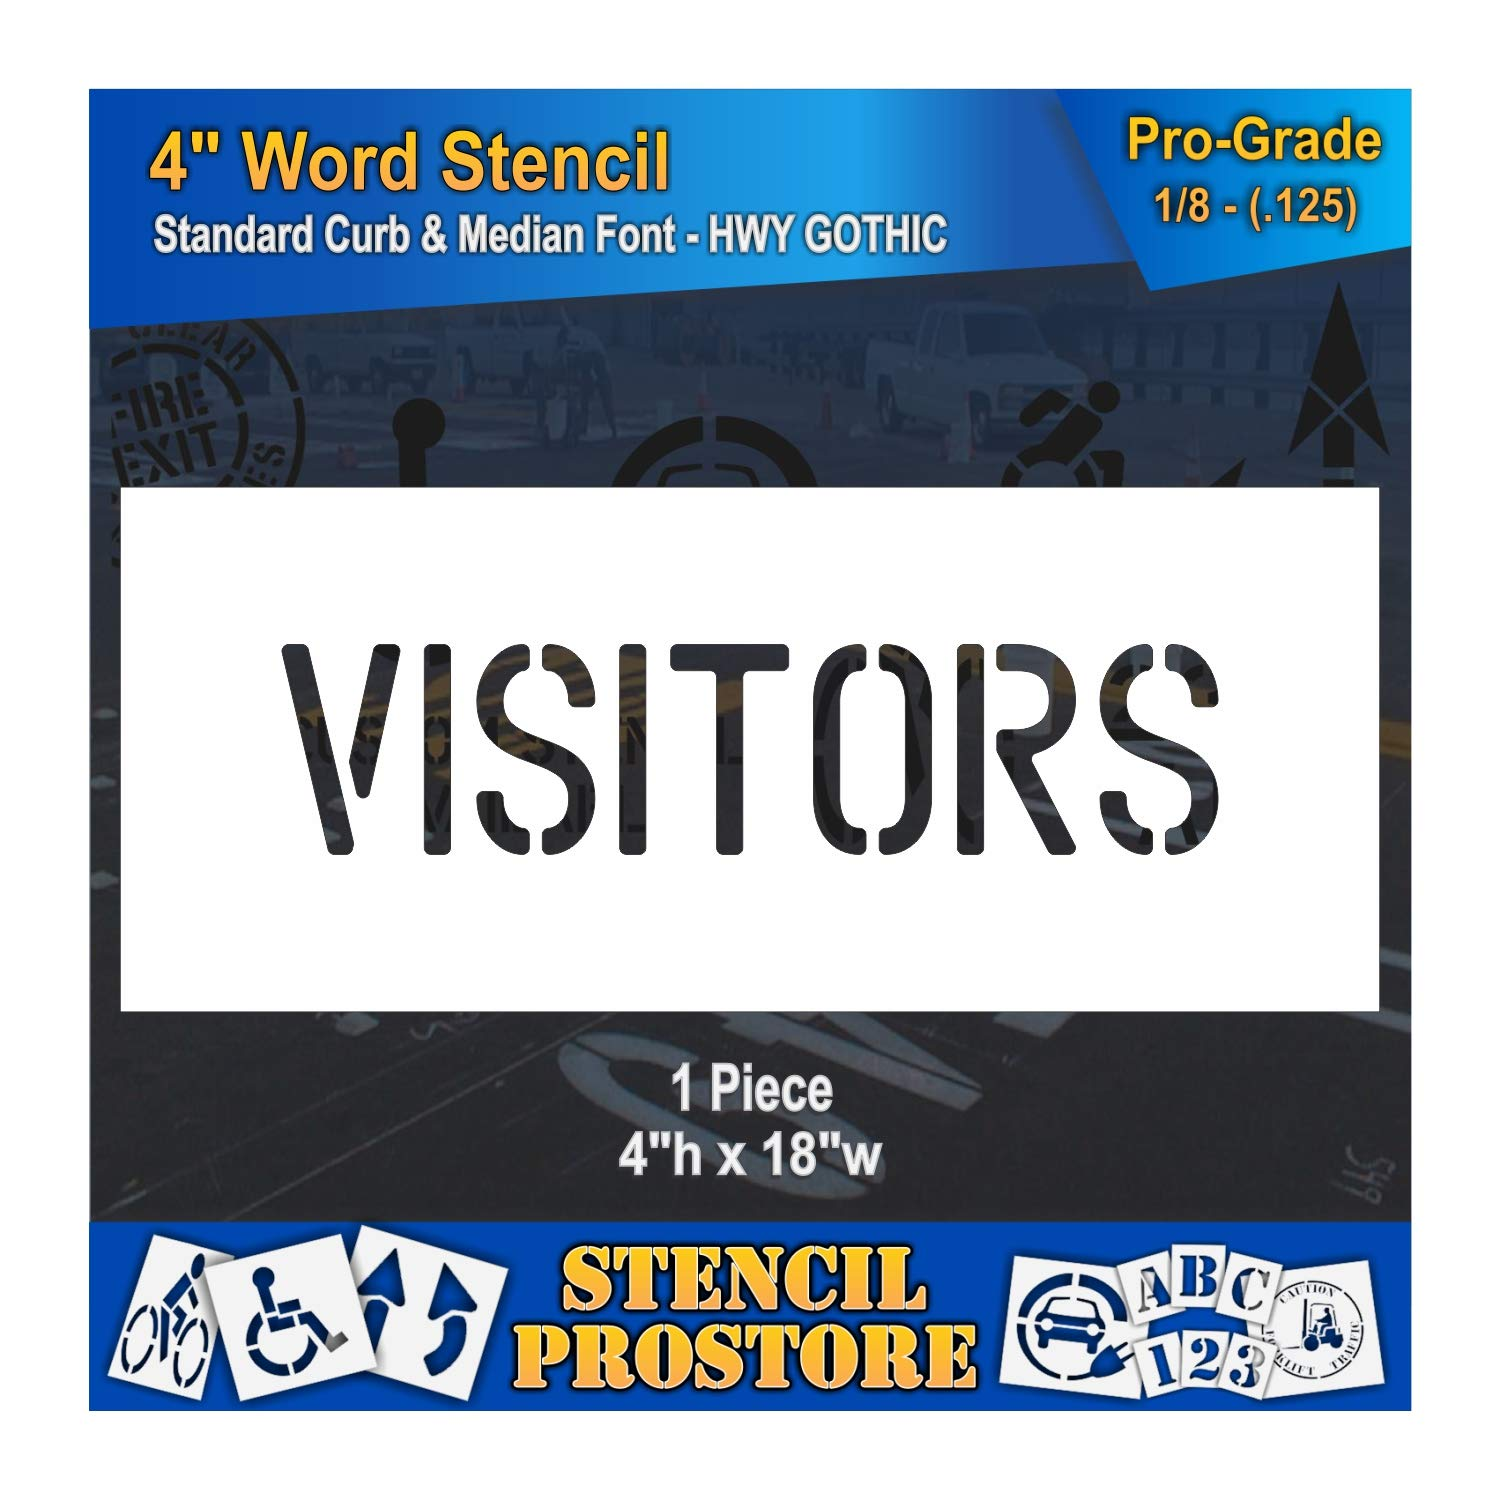 Curb and Median Stencils - 4 inch Visitors Stencil - 4